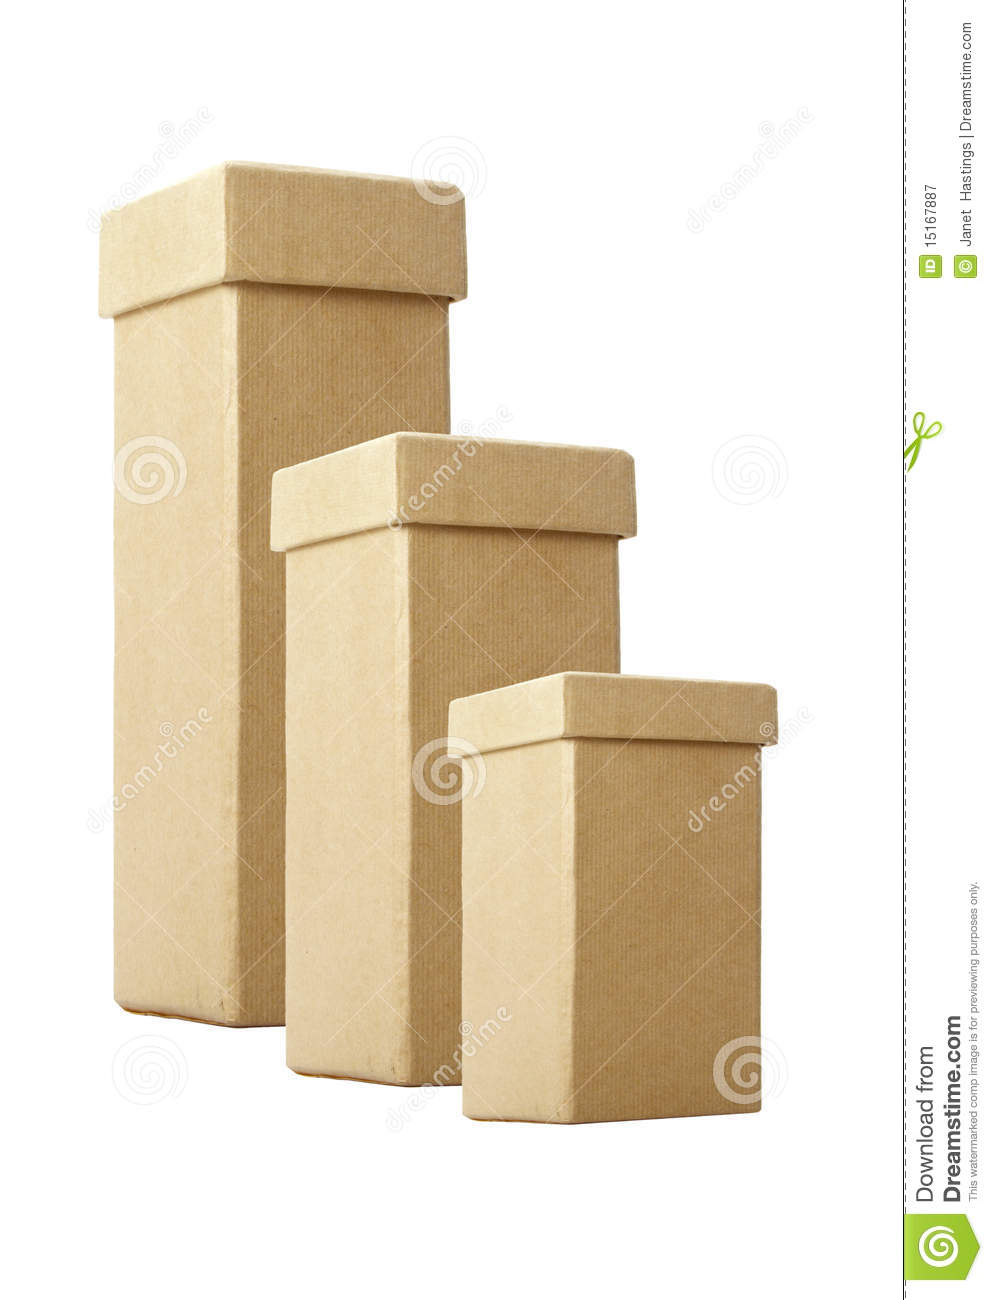 three cardboard boxes with lids royalty free stock photography image 15167887. Black Bedroom Furniture Sets. Home Design Ideas